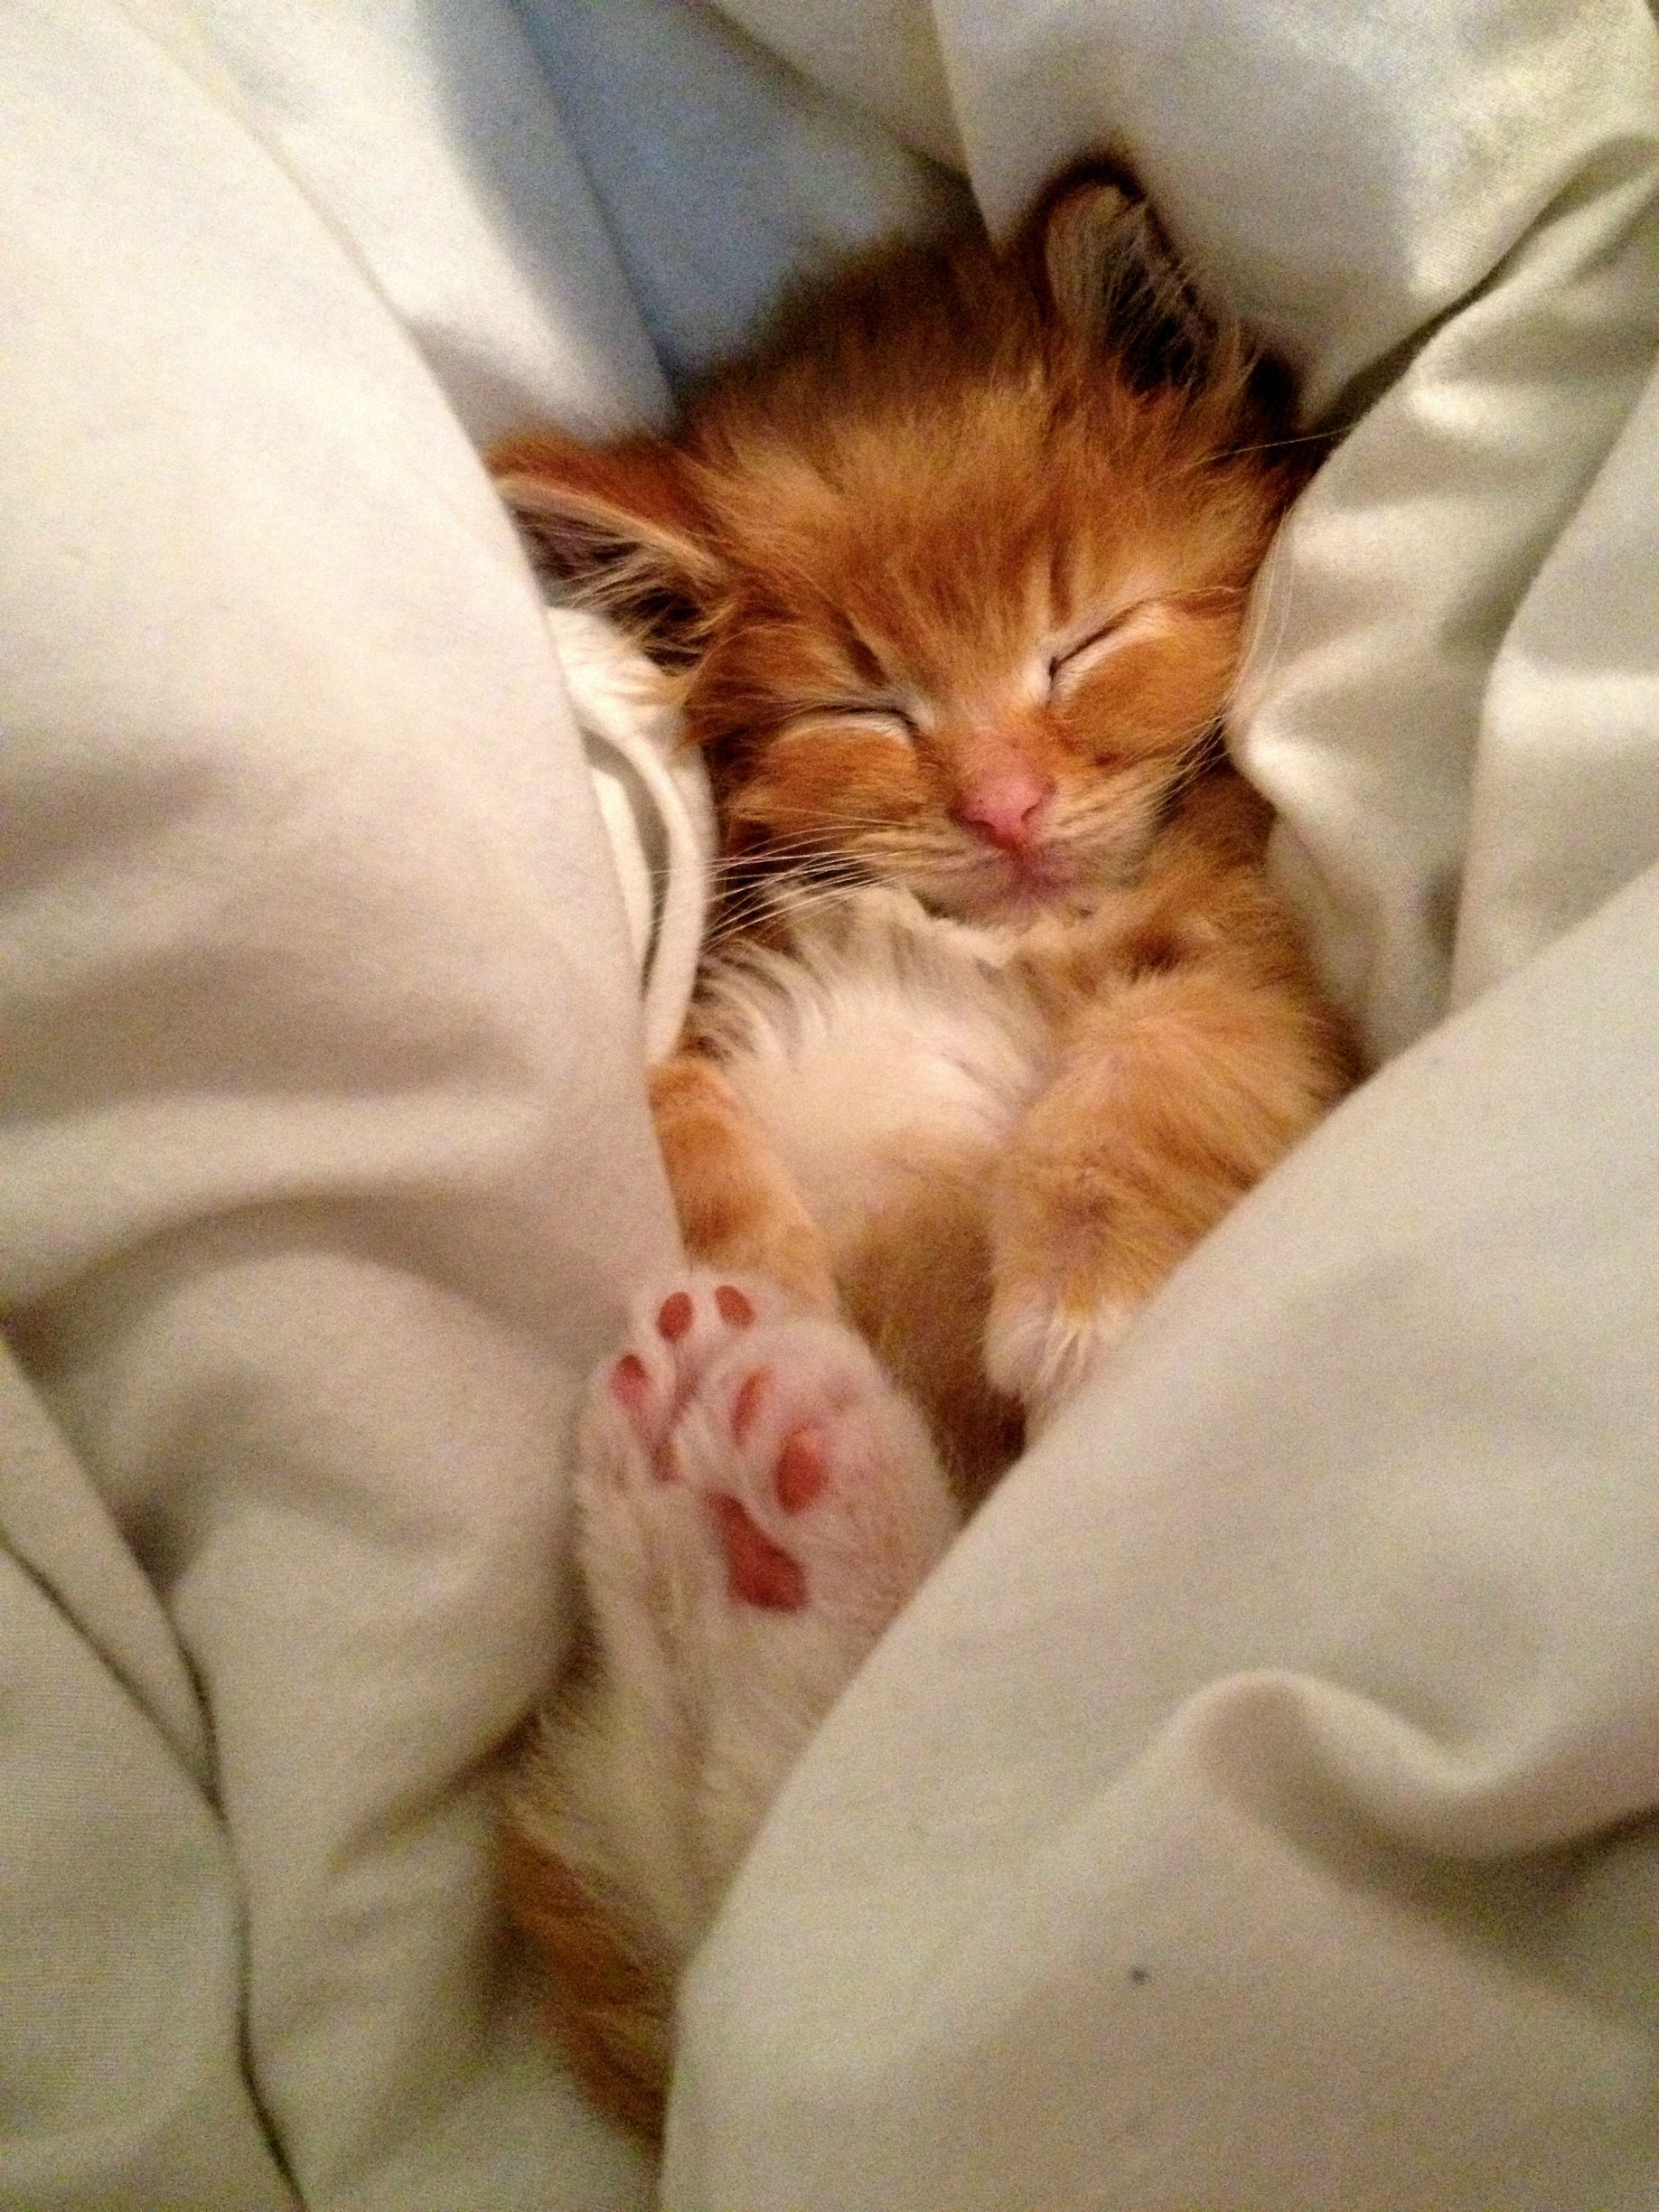 Pin By Joanna Ivanova On Kittens Nothing But Tiny Kittens Cute Cats And Kittens Cats Pet Birds